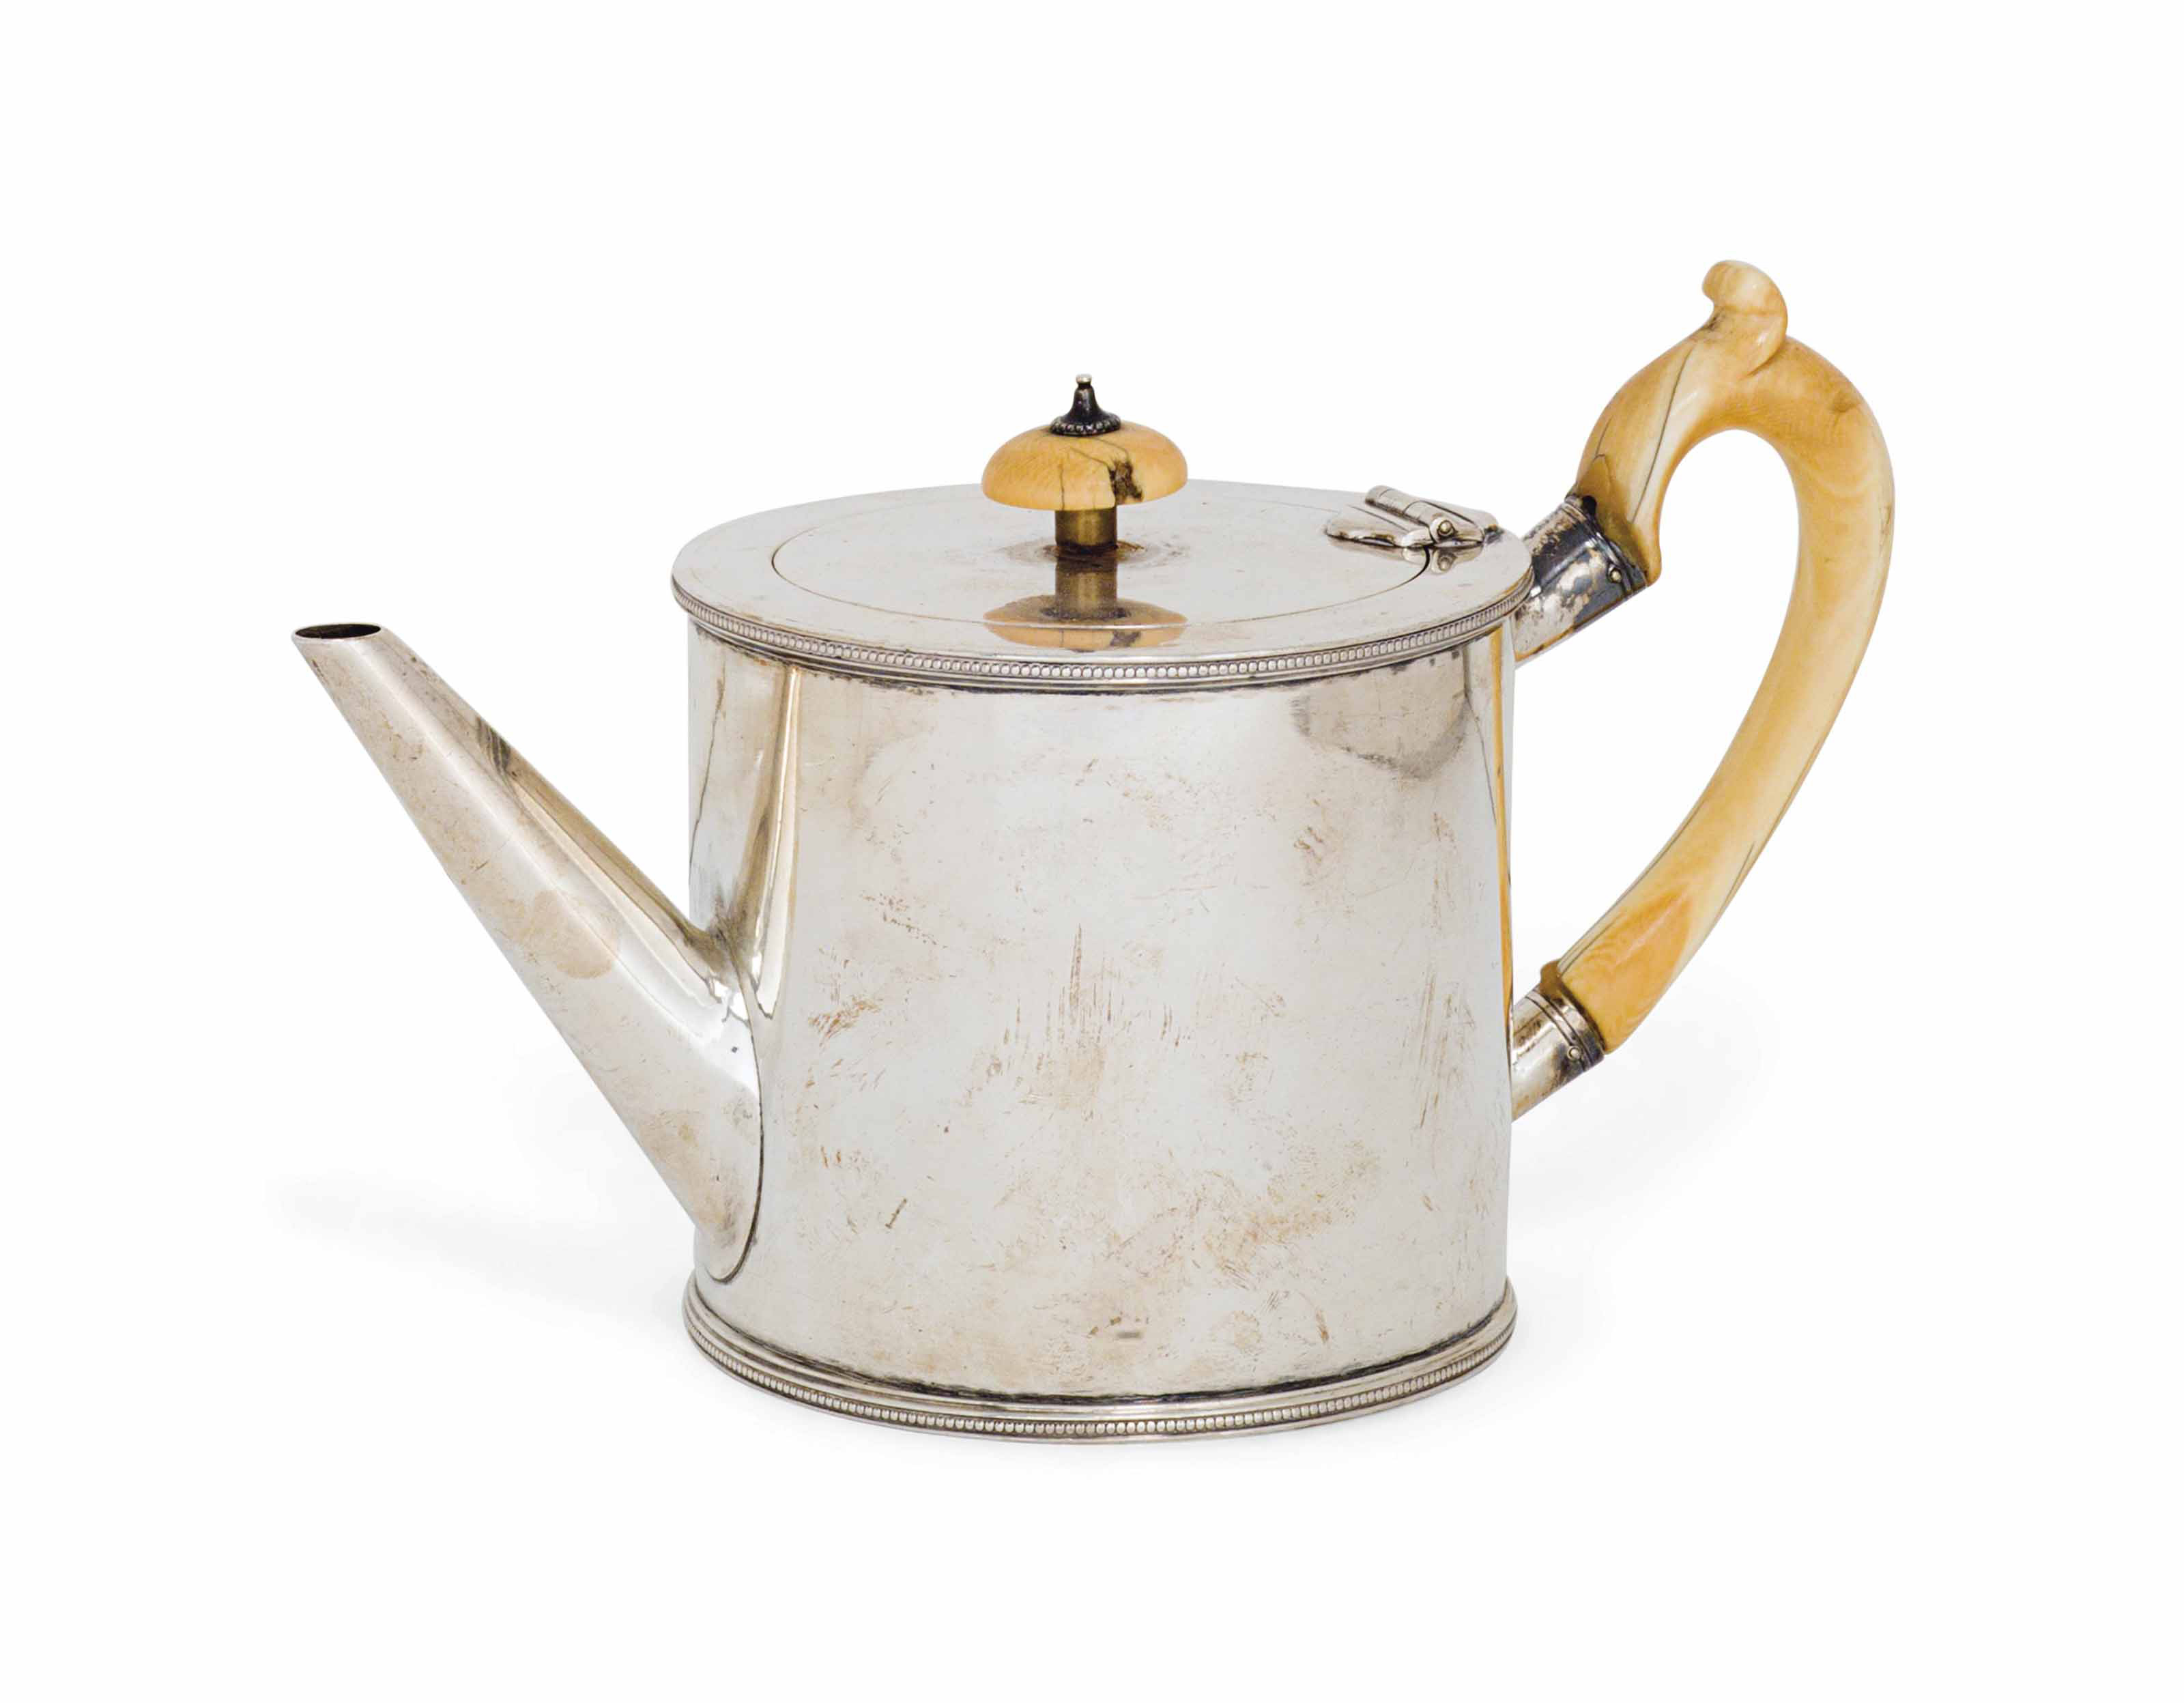 A GEORGE III SILVER DRUM TEAPOT